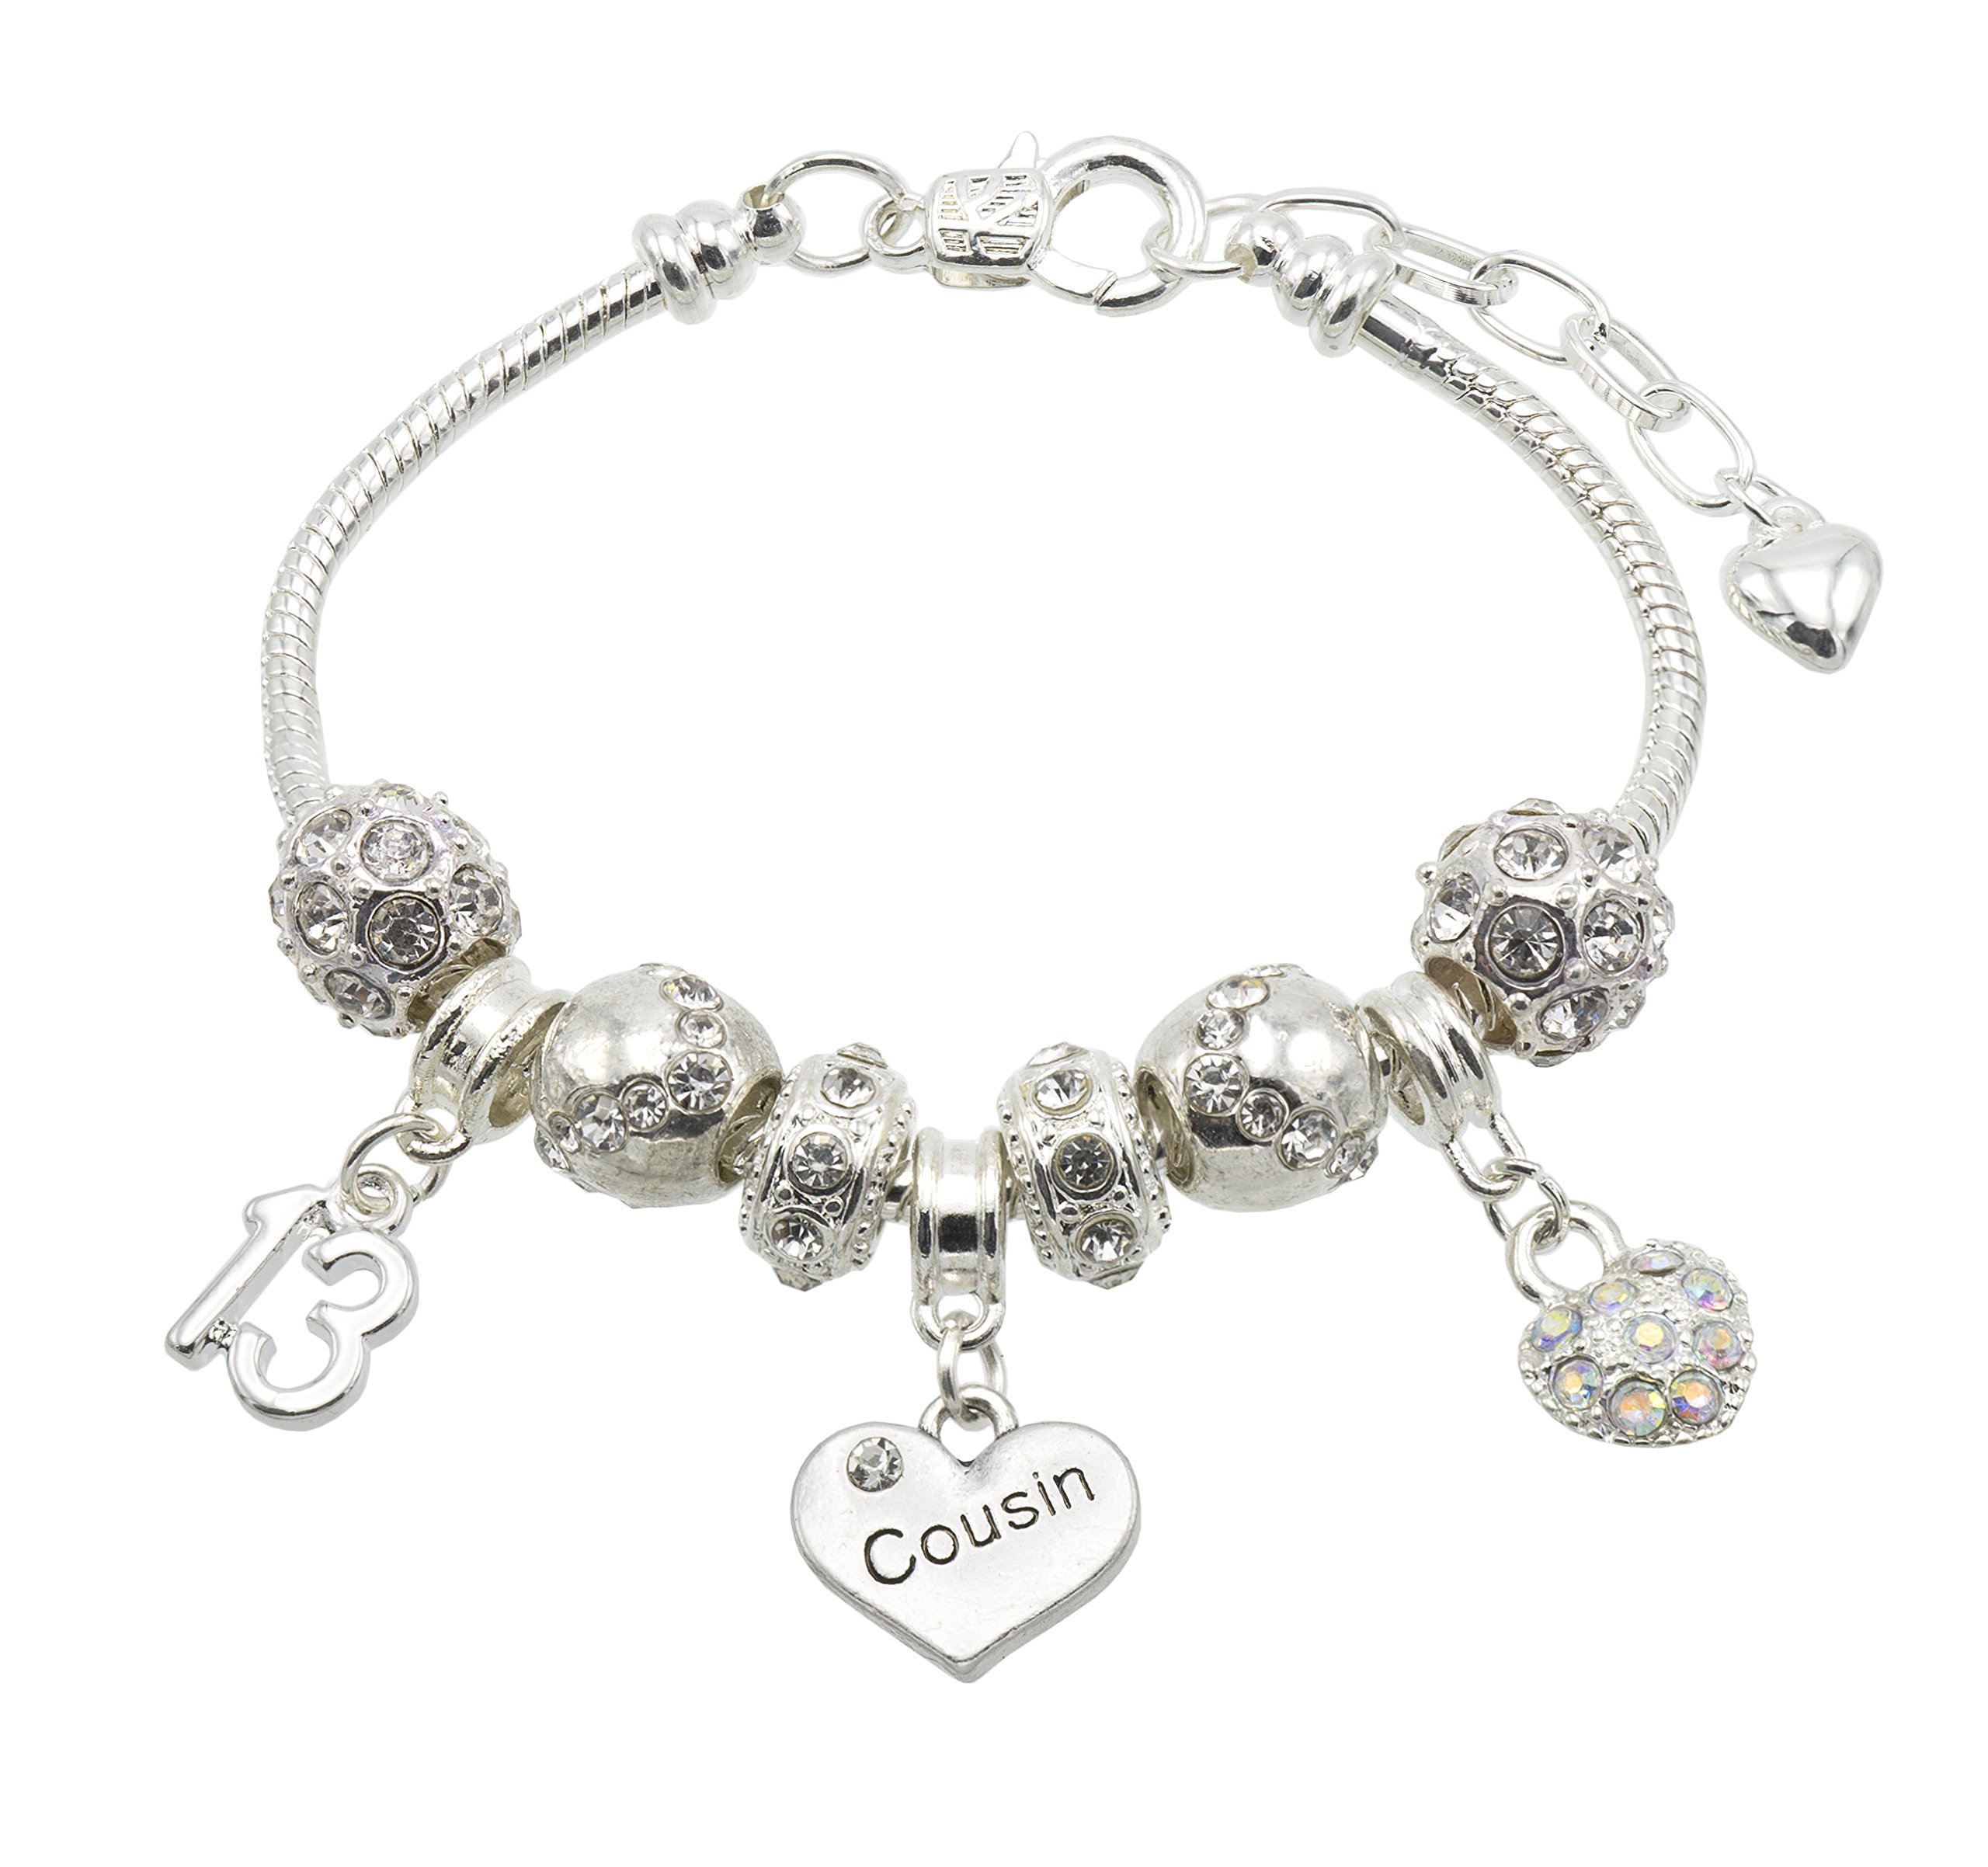 Jewellery Hut Cousin Birthday Charm Bracelet with Gift Box – Ages Available 13, 15, 16, 18, 20, 21, 25, 30, 35, 40, 45…